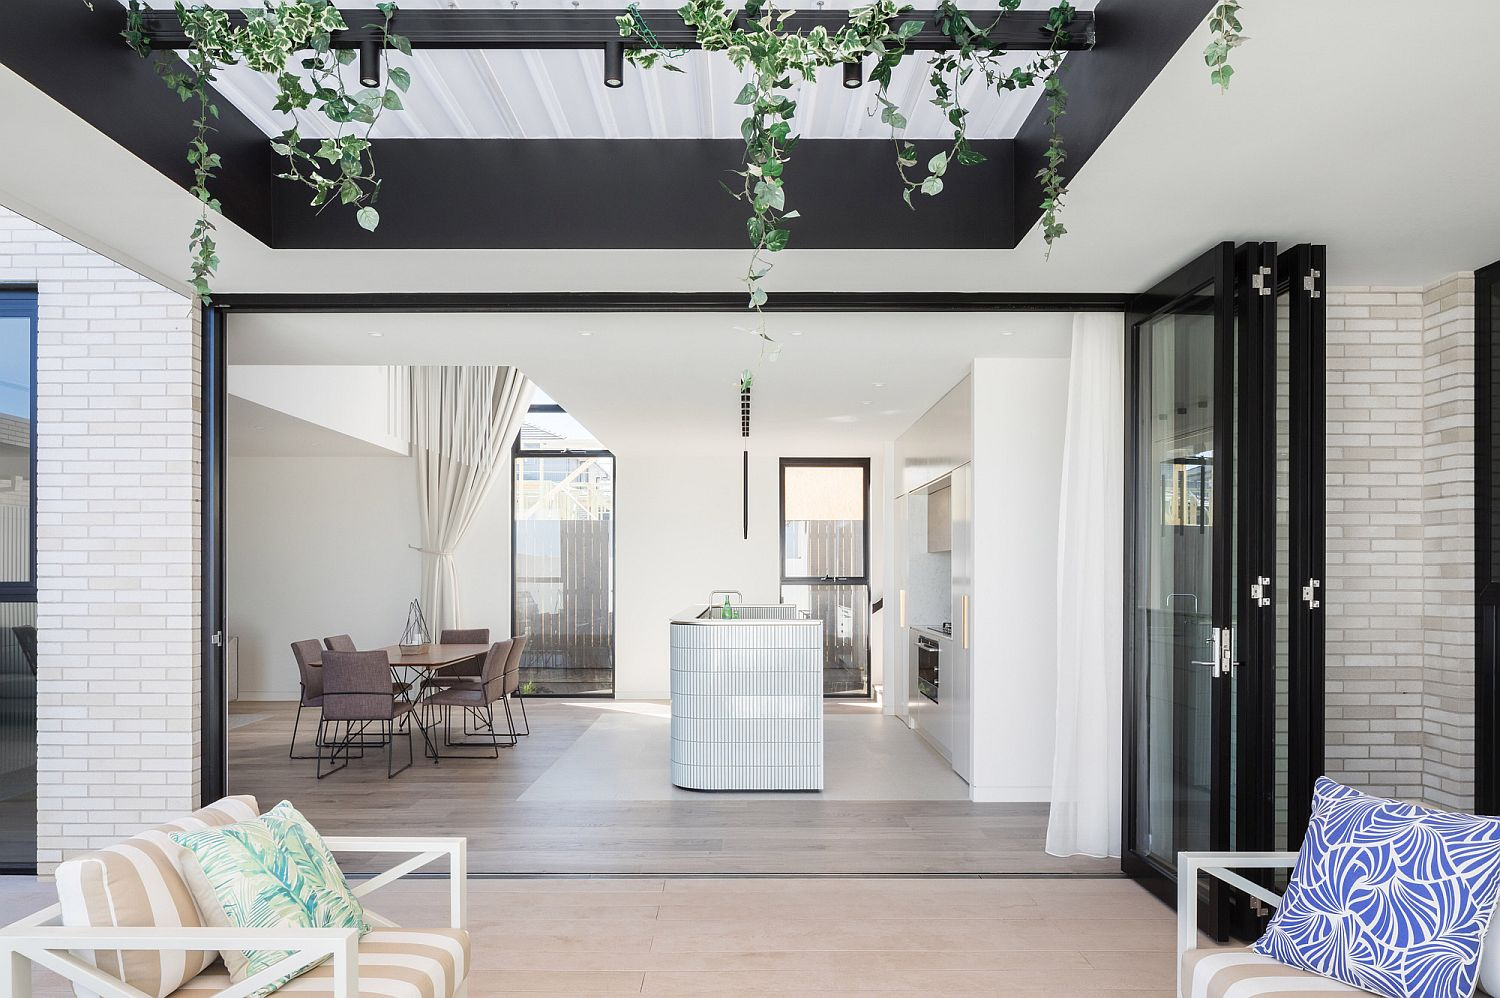 Locally sourced white brick and modern finishes create a bright Sydney home